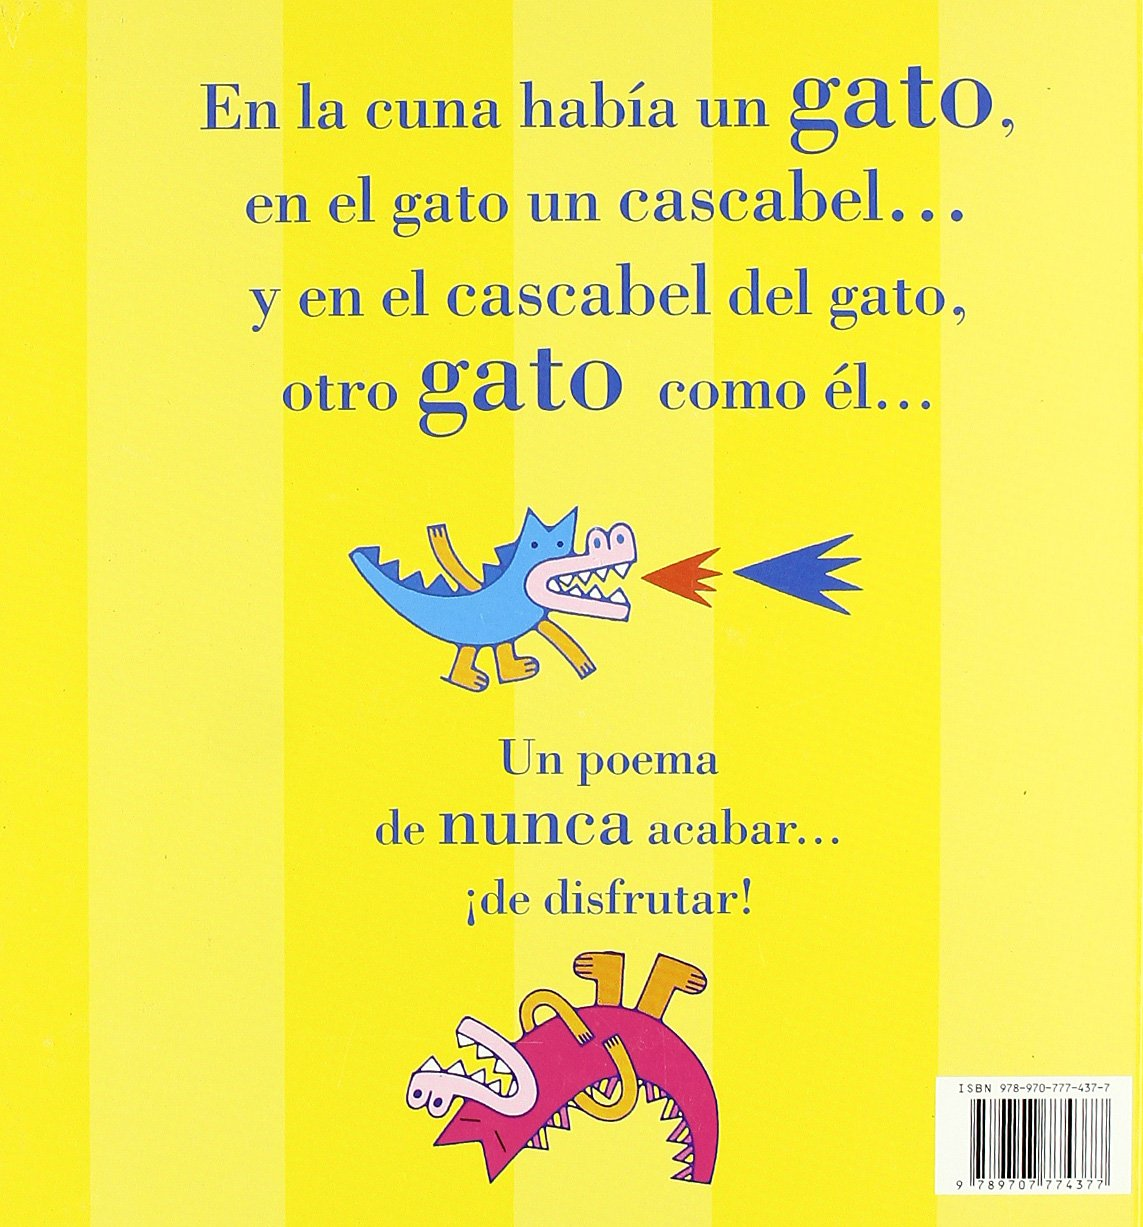 Gato que duerme/ Sleeping Cat (Spanish Edition): Maria Cristina Ramos, Alain Espinosa: 9789707774377: Amazon.com: Books